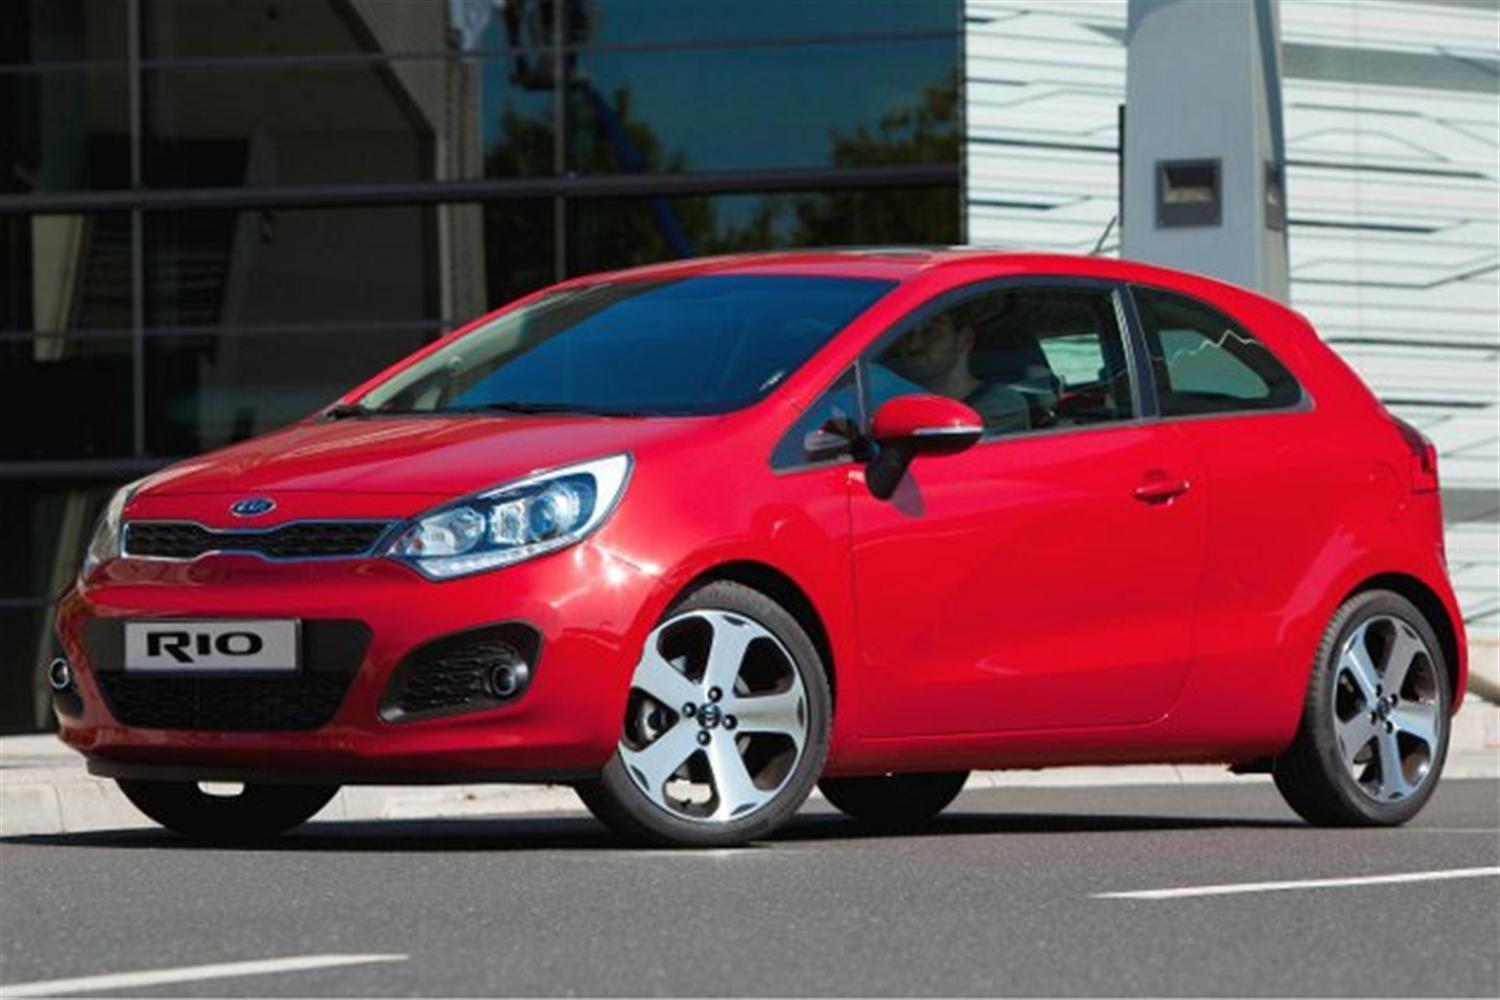 Kia Rio Scores 5 Stars in Latest Euro NCAP Test